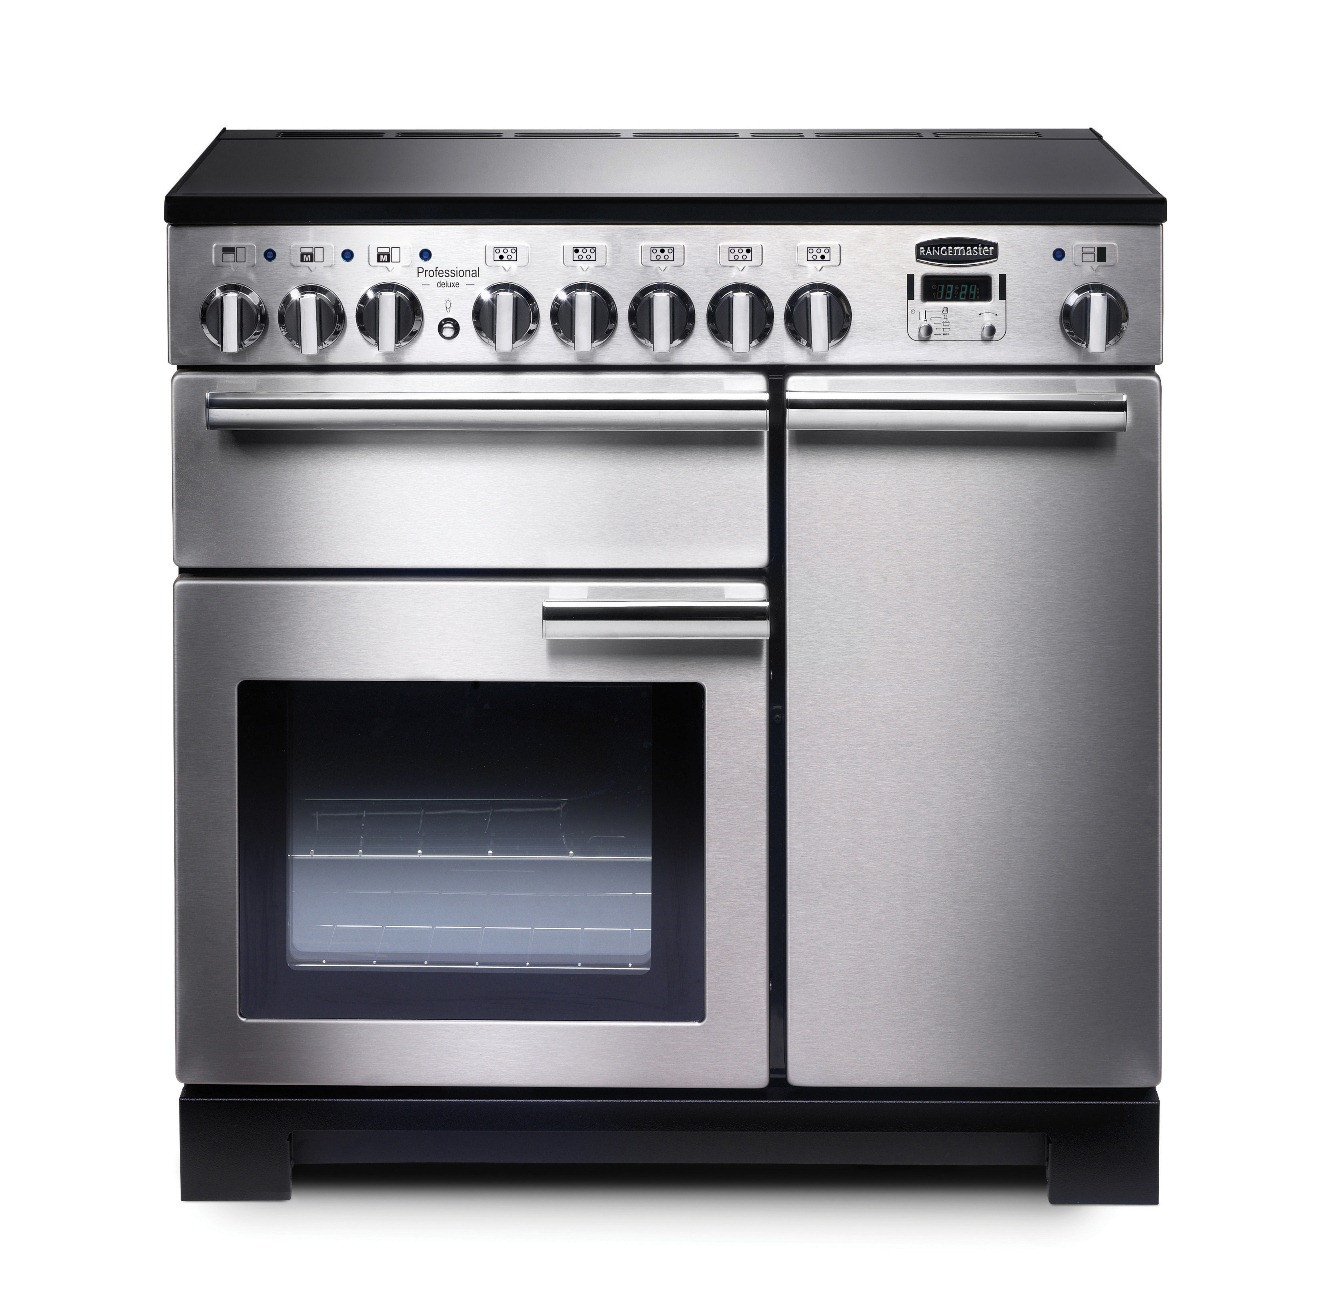 Rangemaster Professional Deluxe 90 Induction Stainless Steel Range Cooker 97860